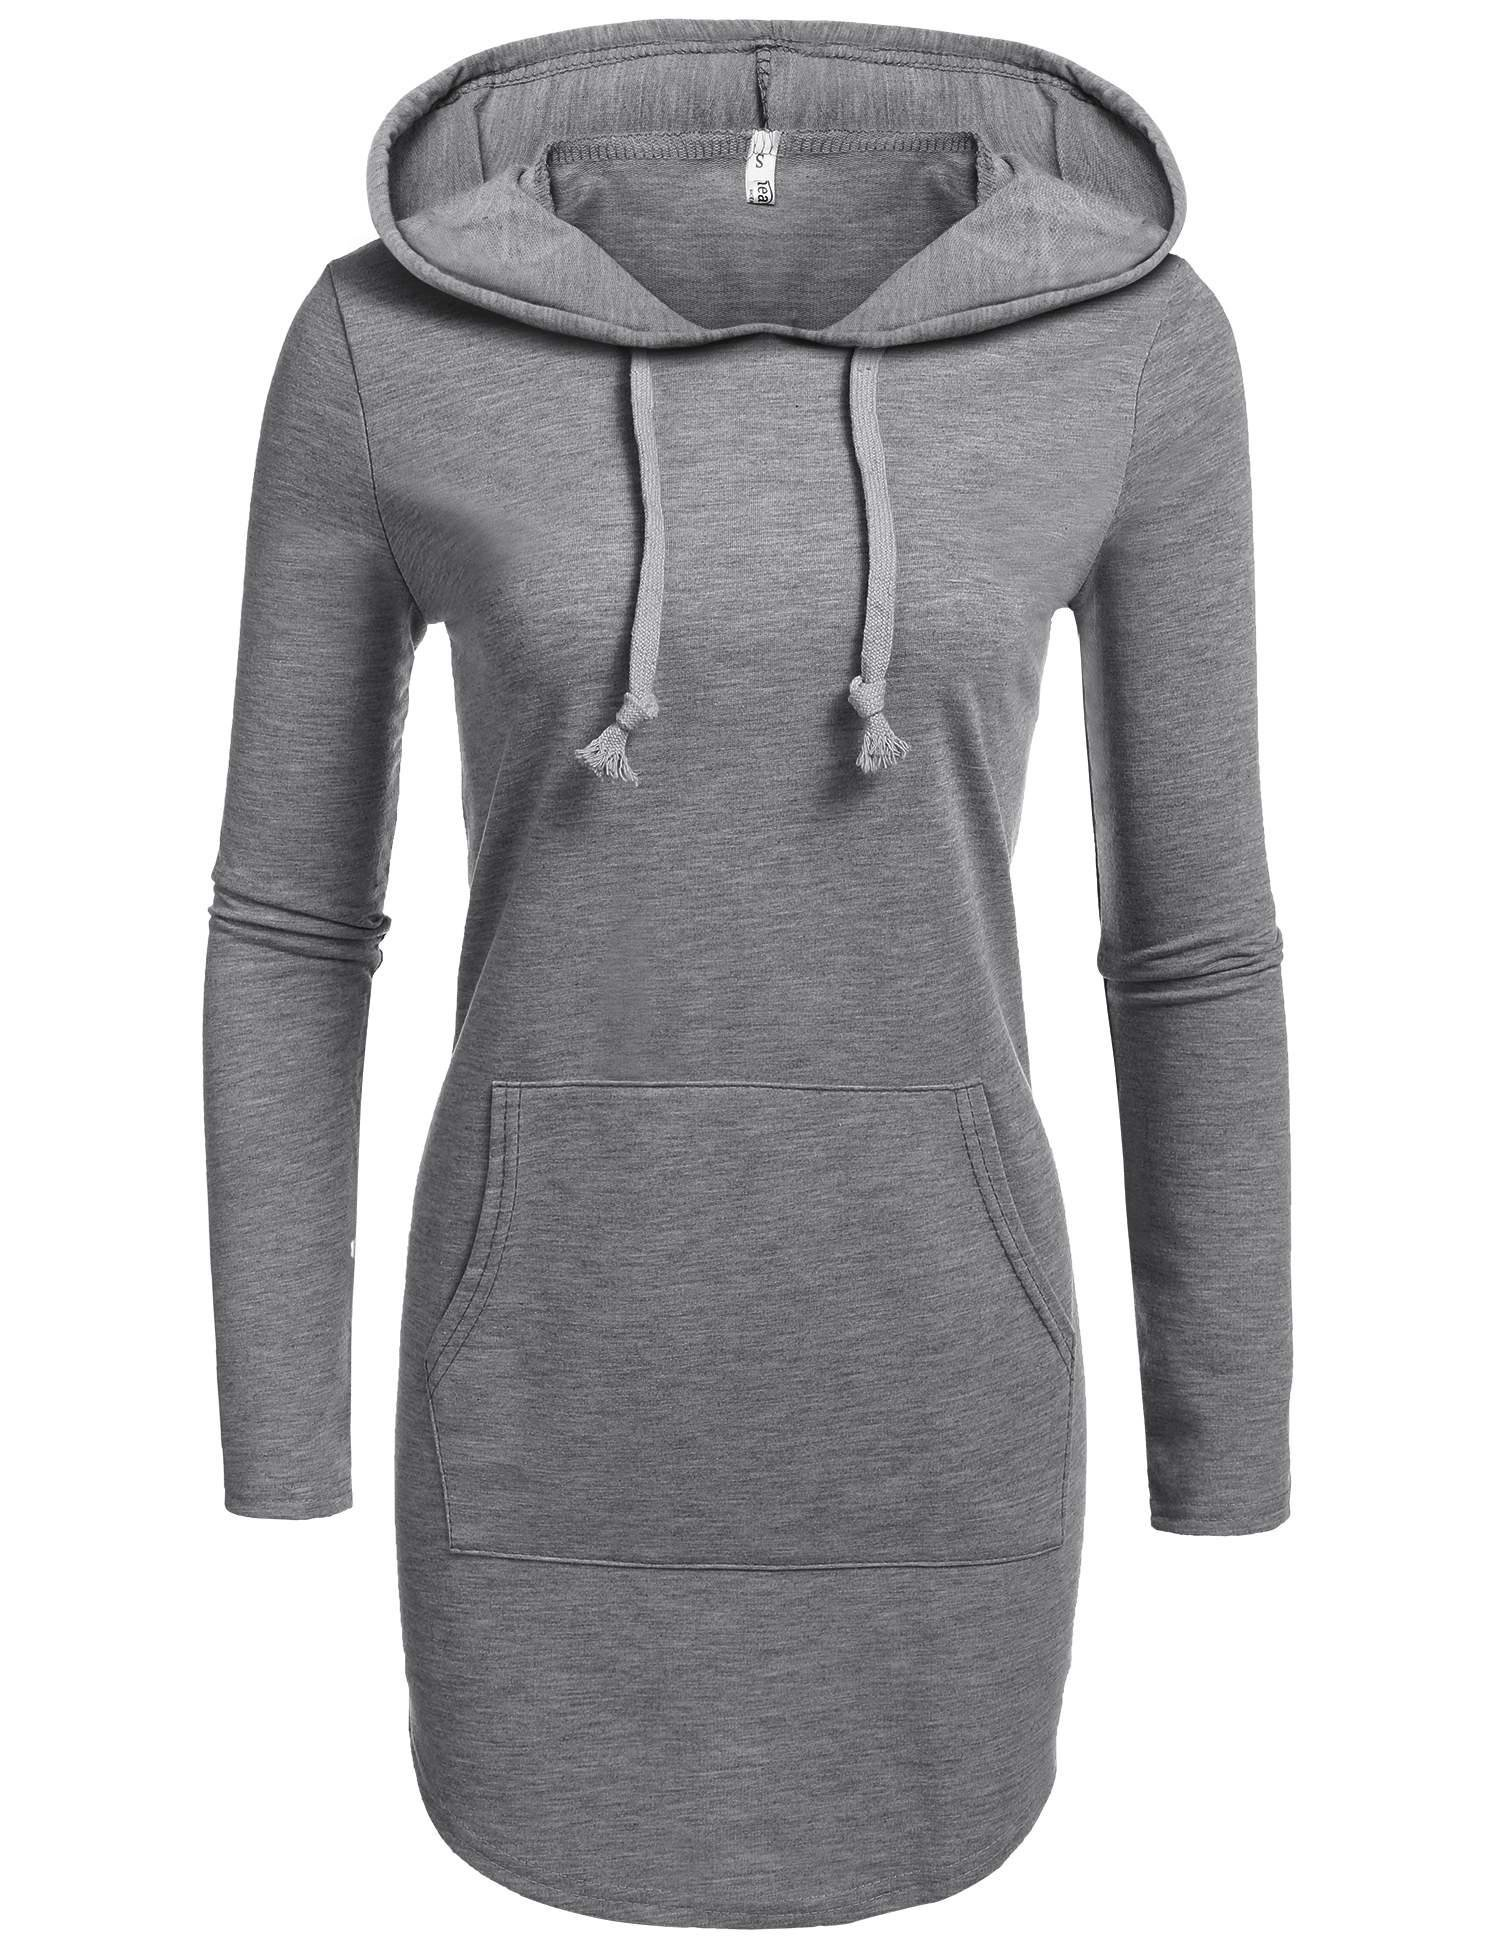 Beyove Women Long Pullover Hoodie Solid Long Sleeve Drawstring Hooded Sweatshirt Dress